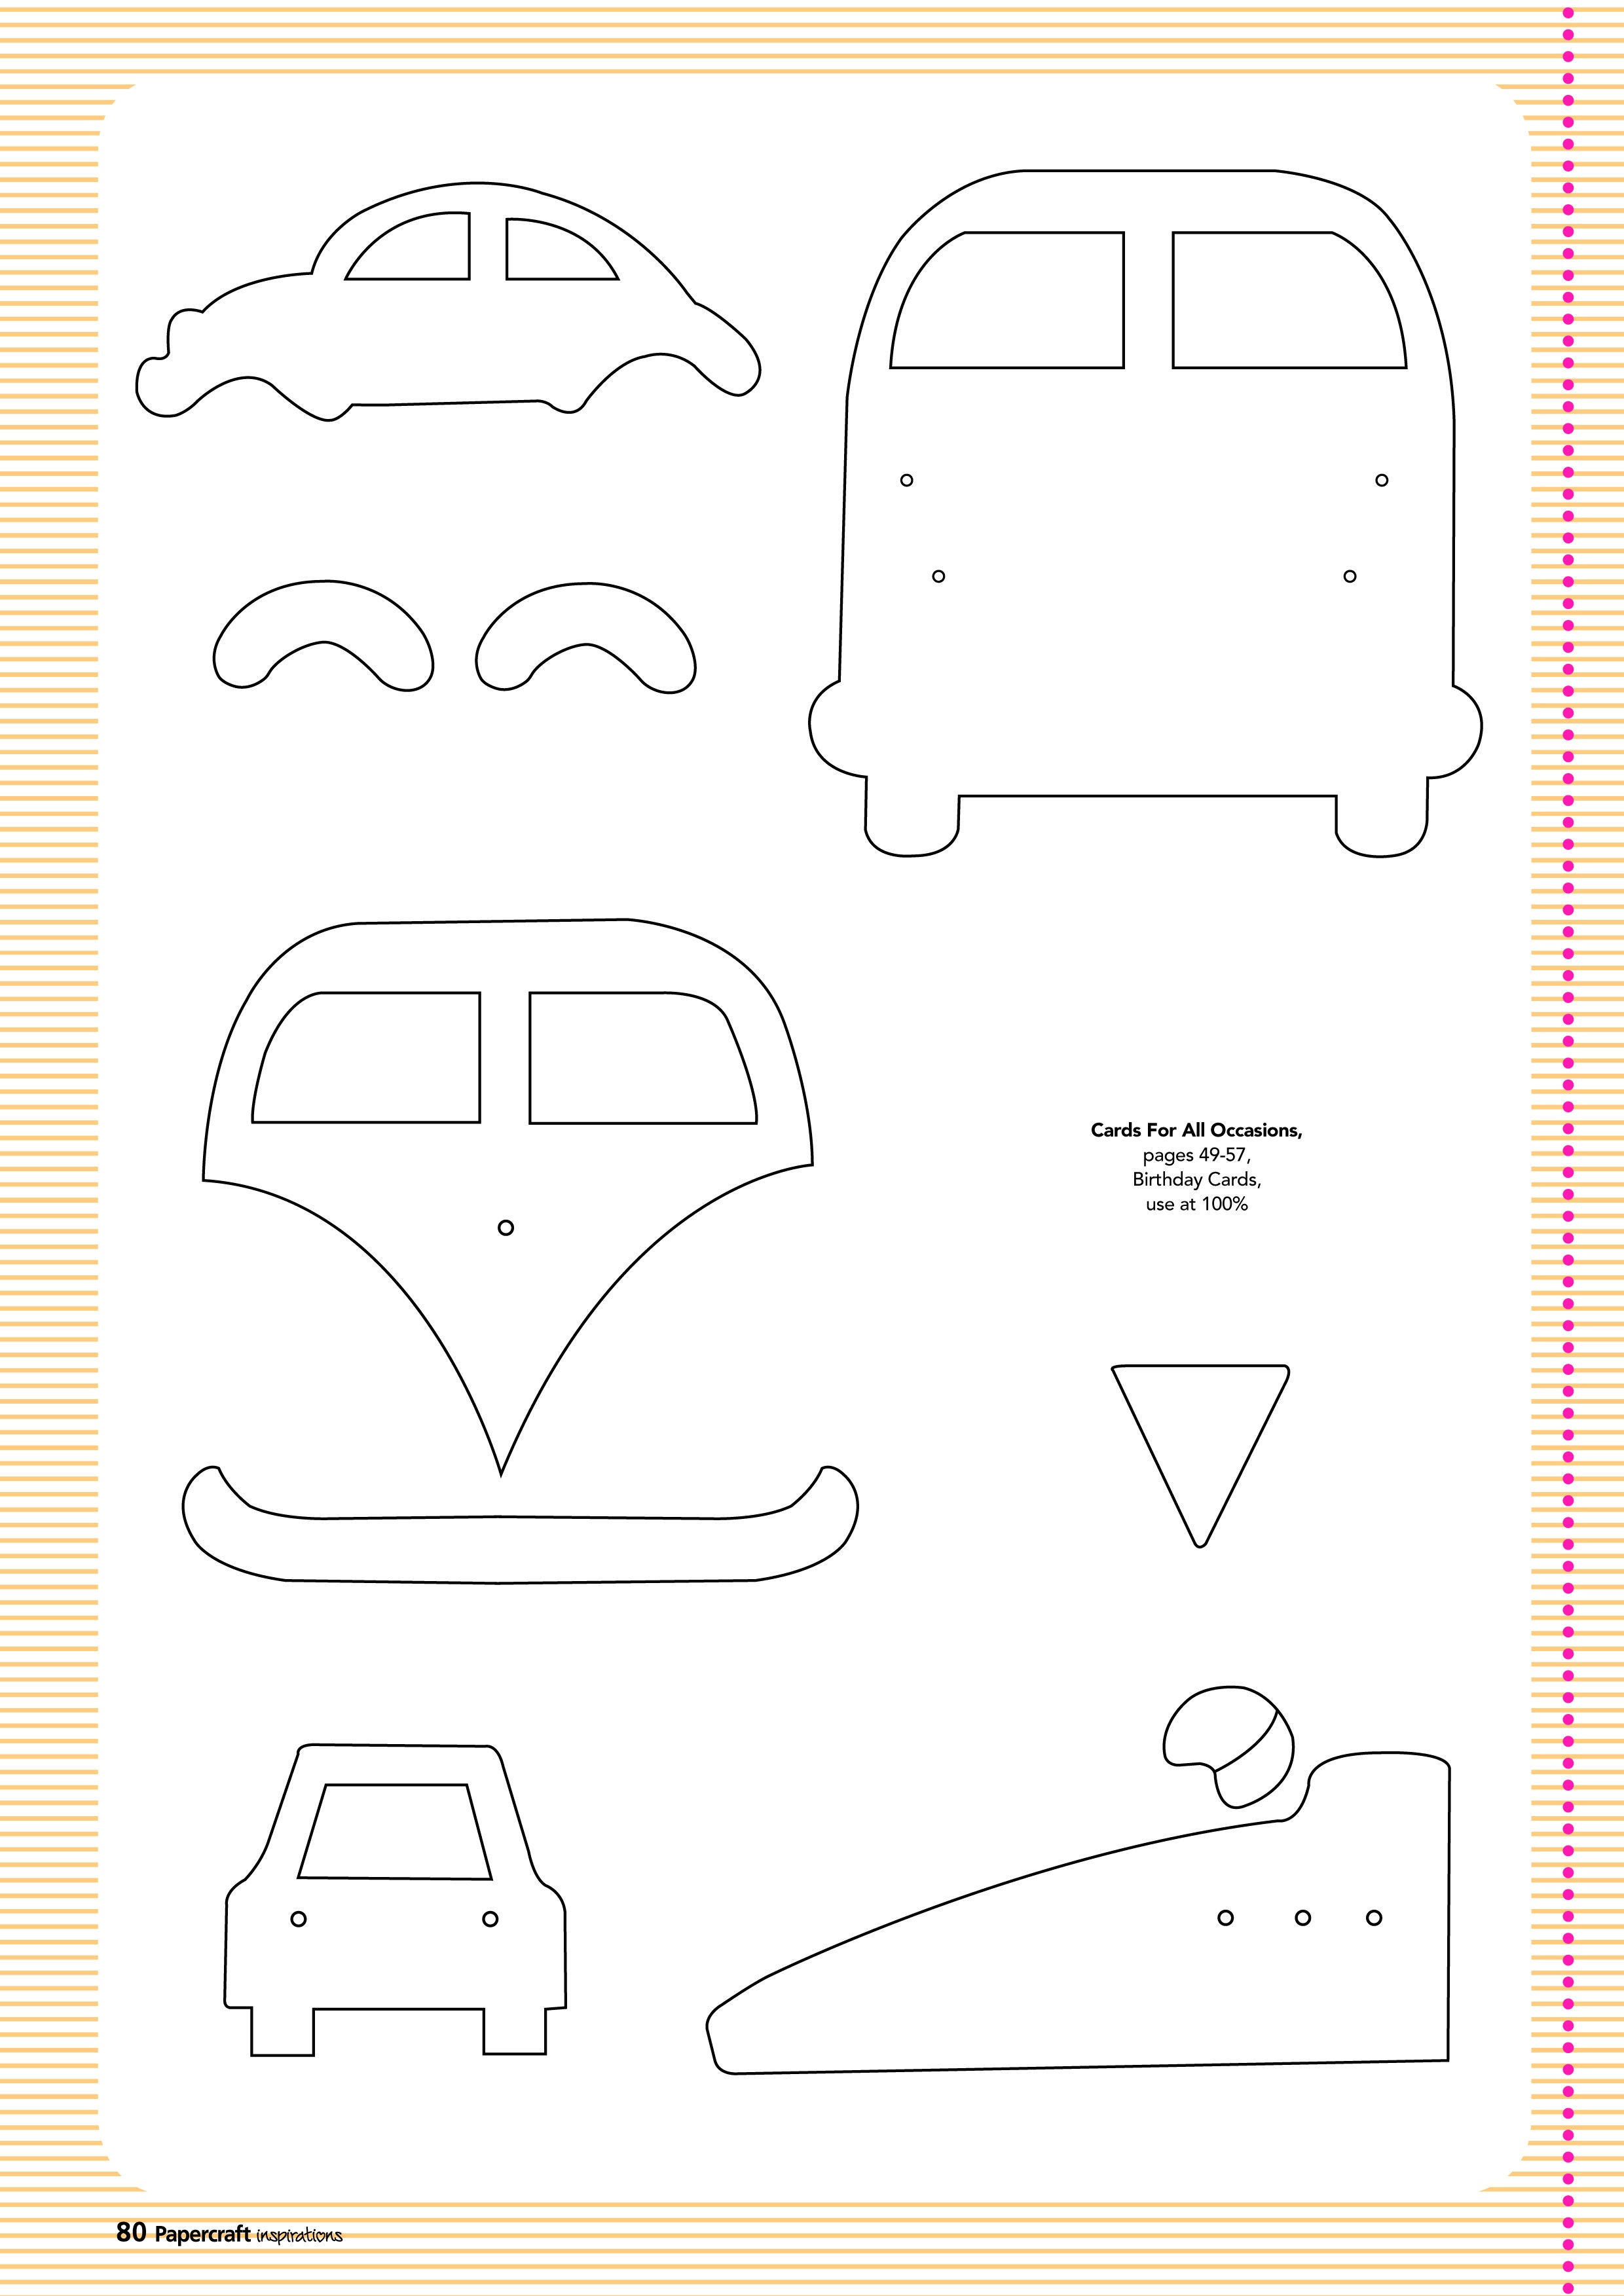 Free Card Making Templates From Papercraft Inspirations 123   Quiet - Free Card Making Templates Printable